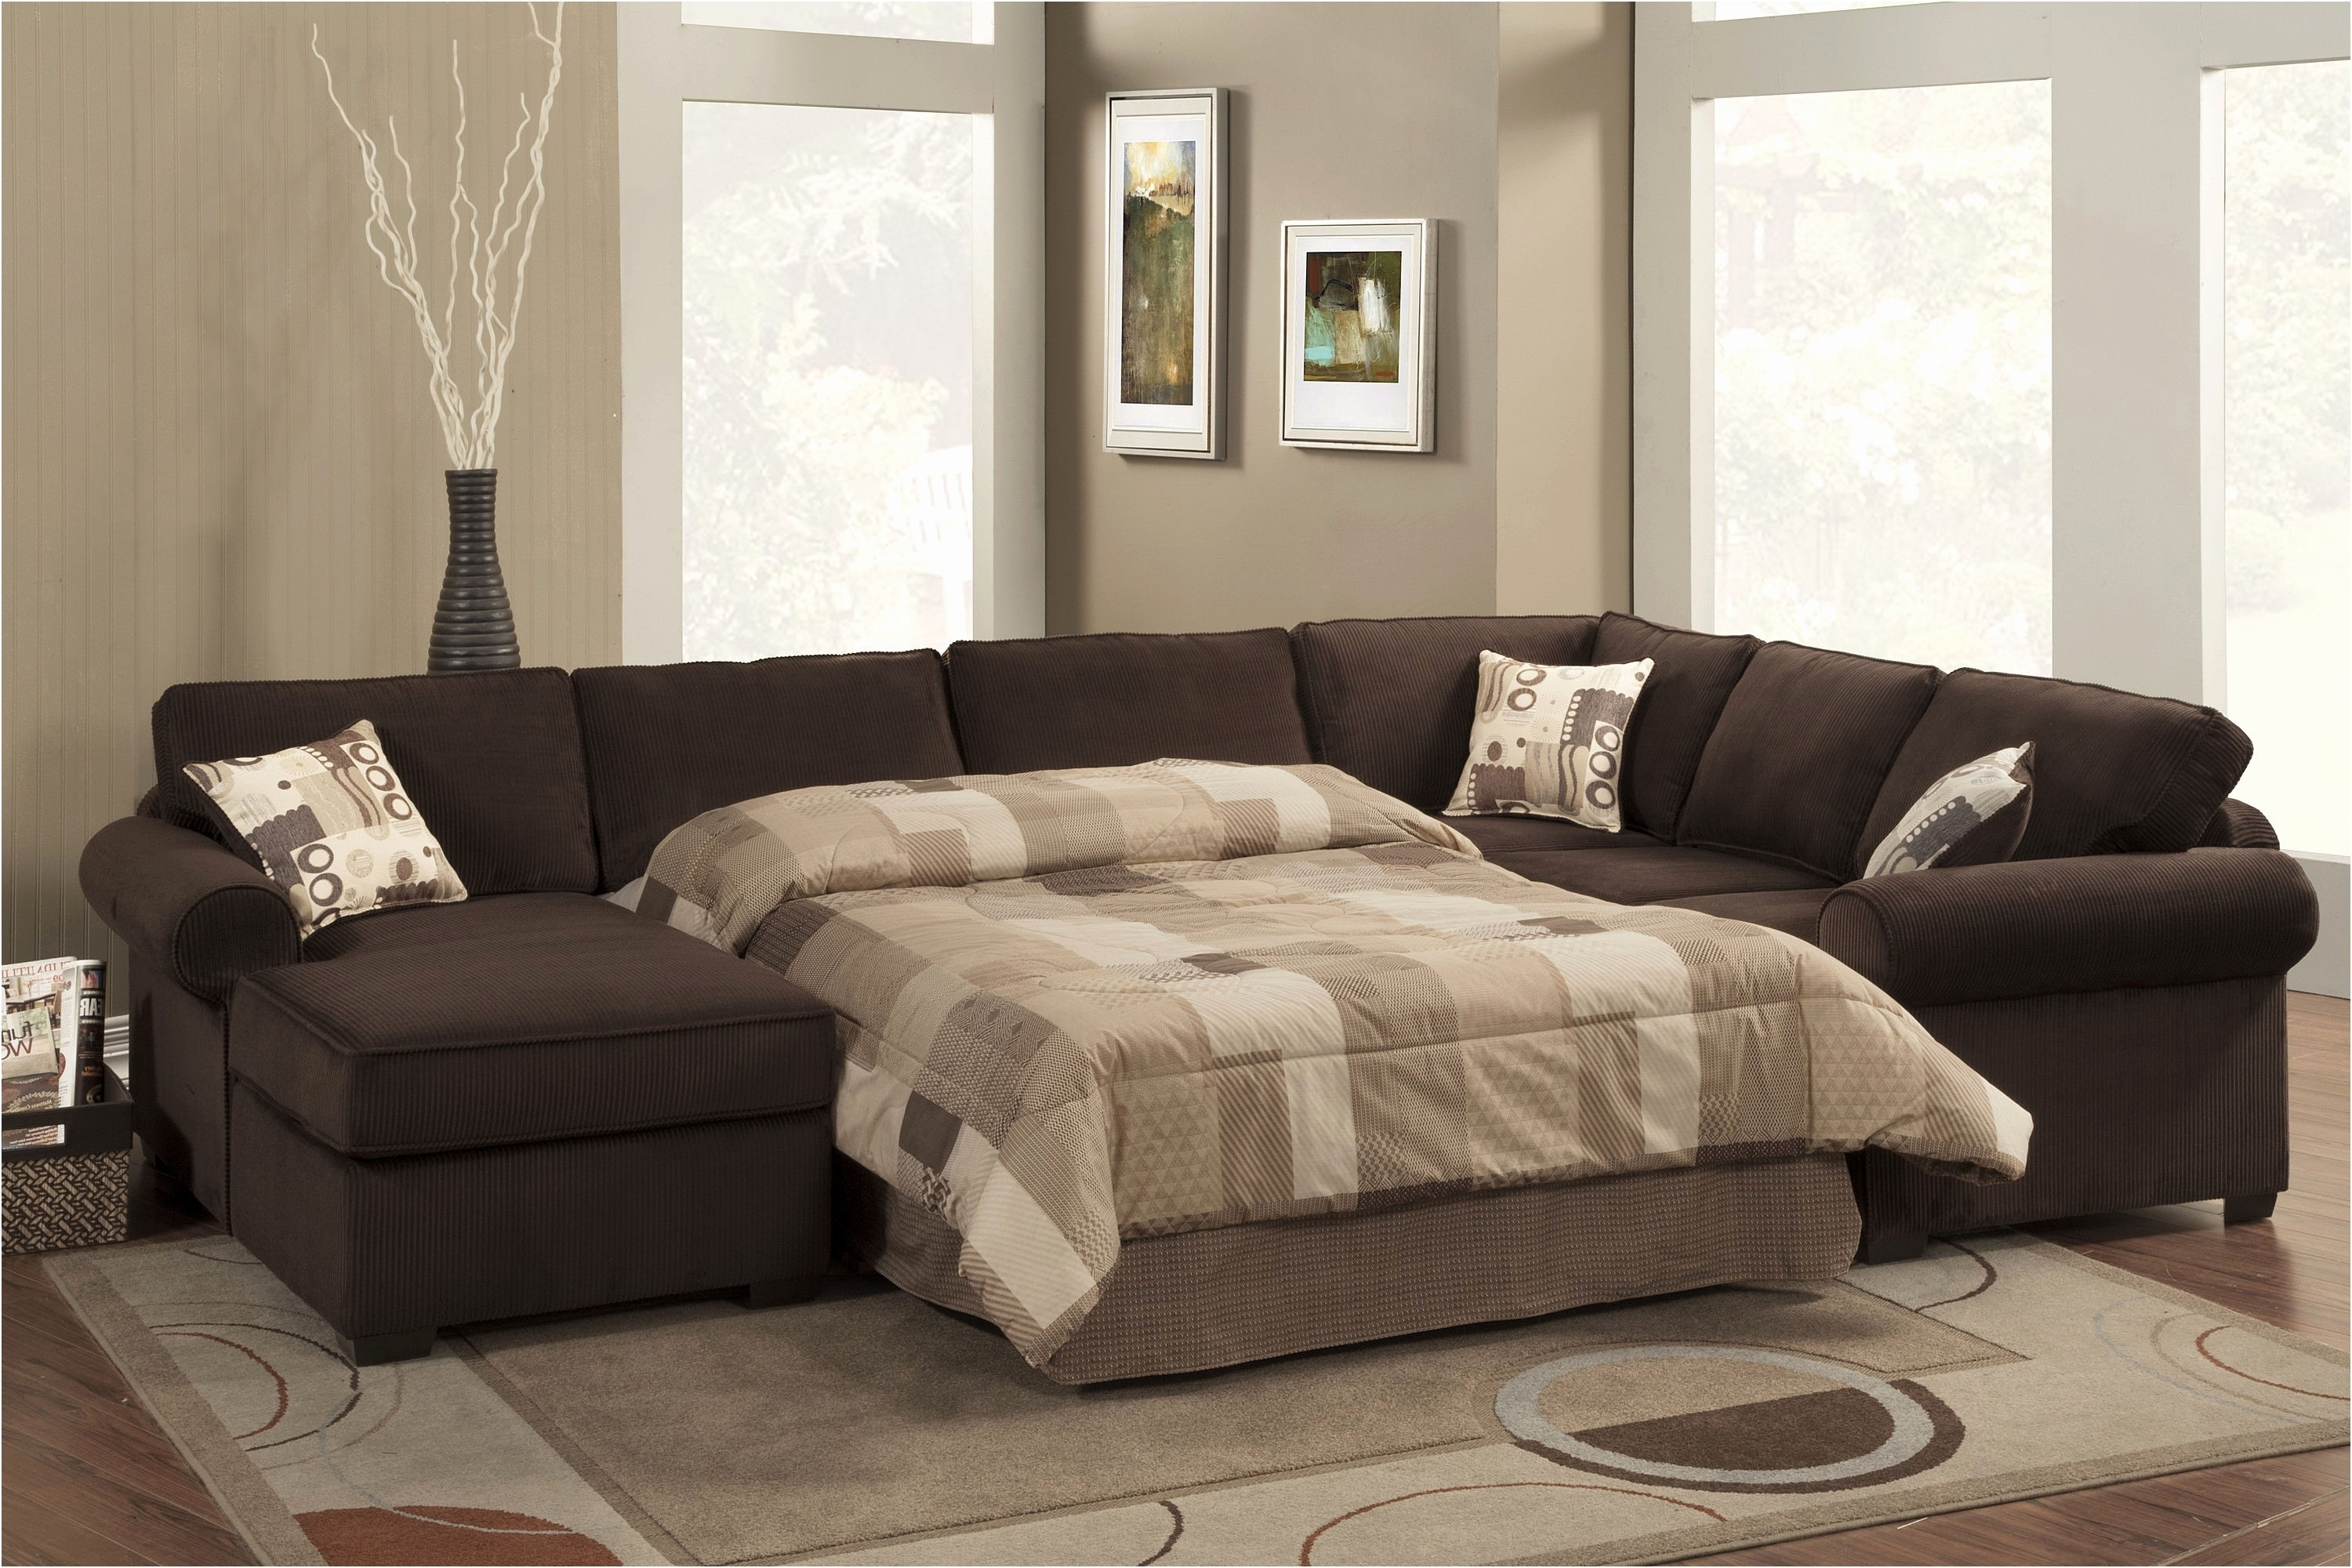 Ikea Sectional Sleeper Sofas With Preferred New Sectional Sofa Pull Out Bed Lovely – Intuisiblog (View 17 of 20)